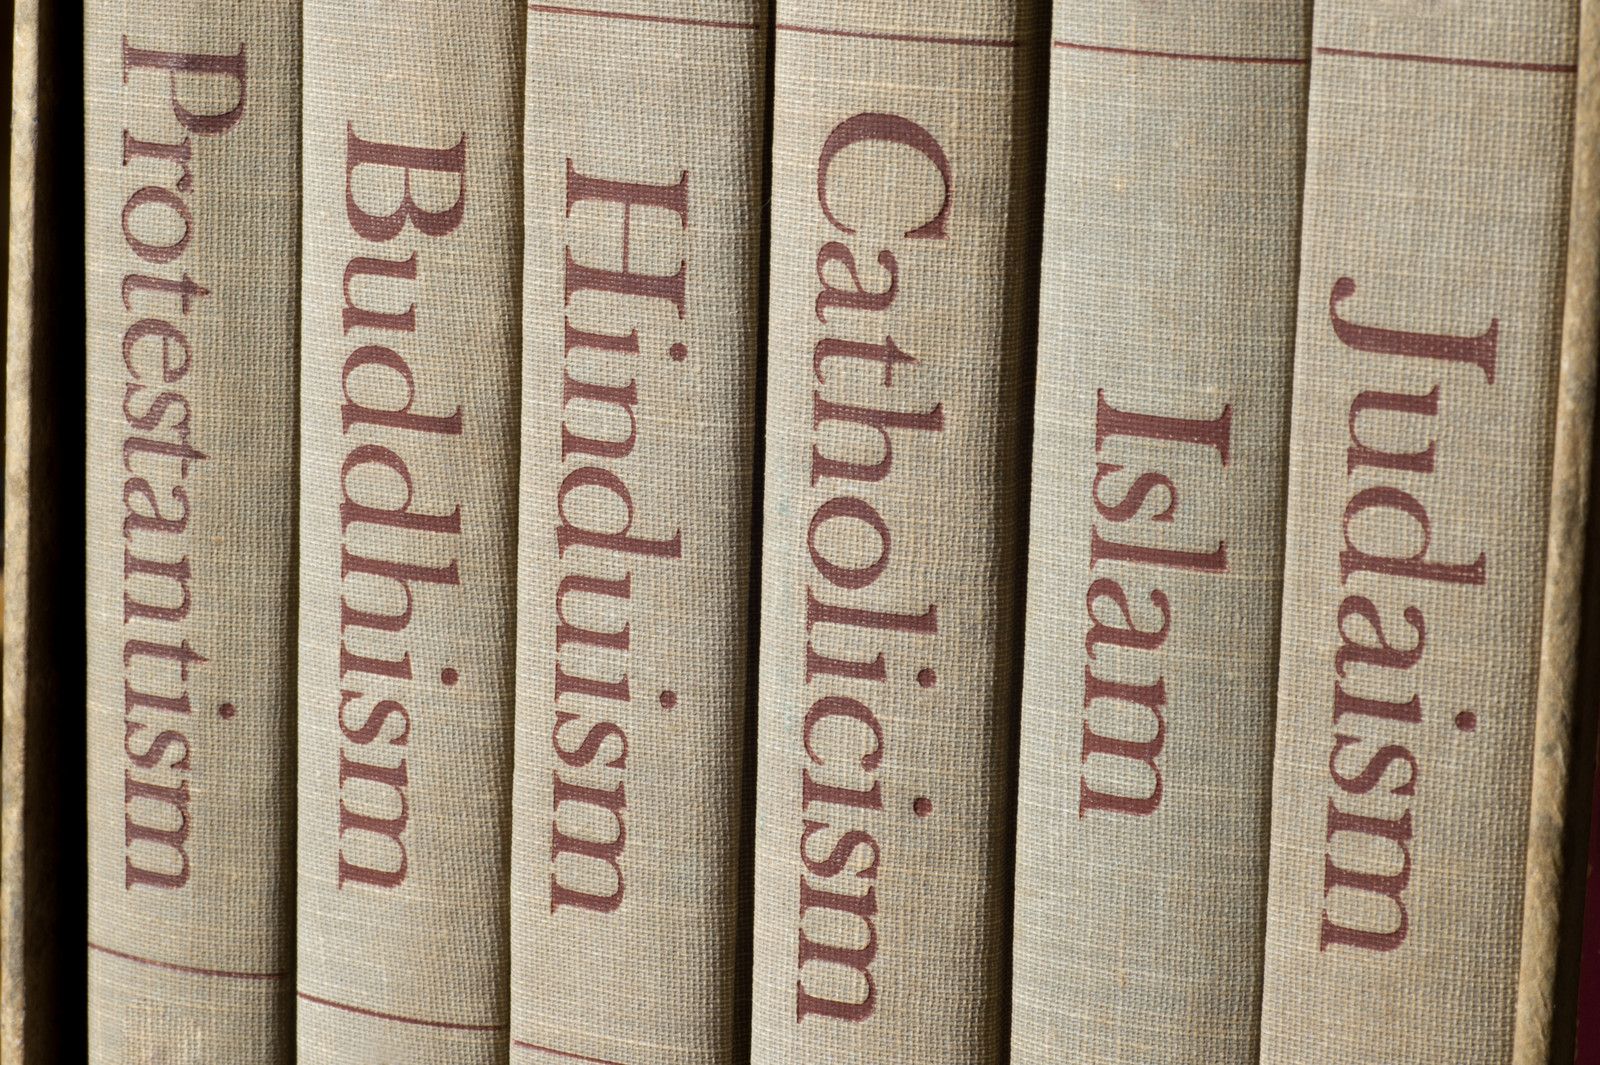 Religious Scams - Tan Book with brown writing with the spines listing major world religions